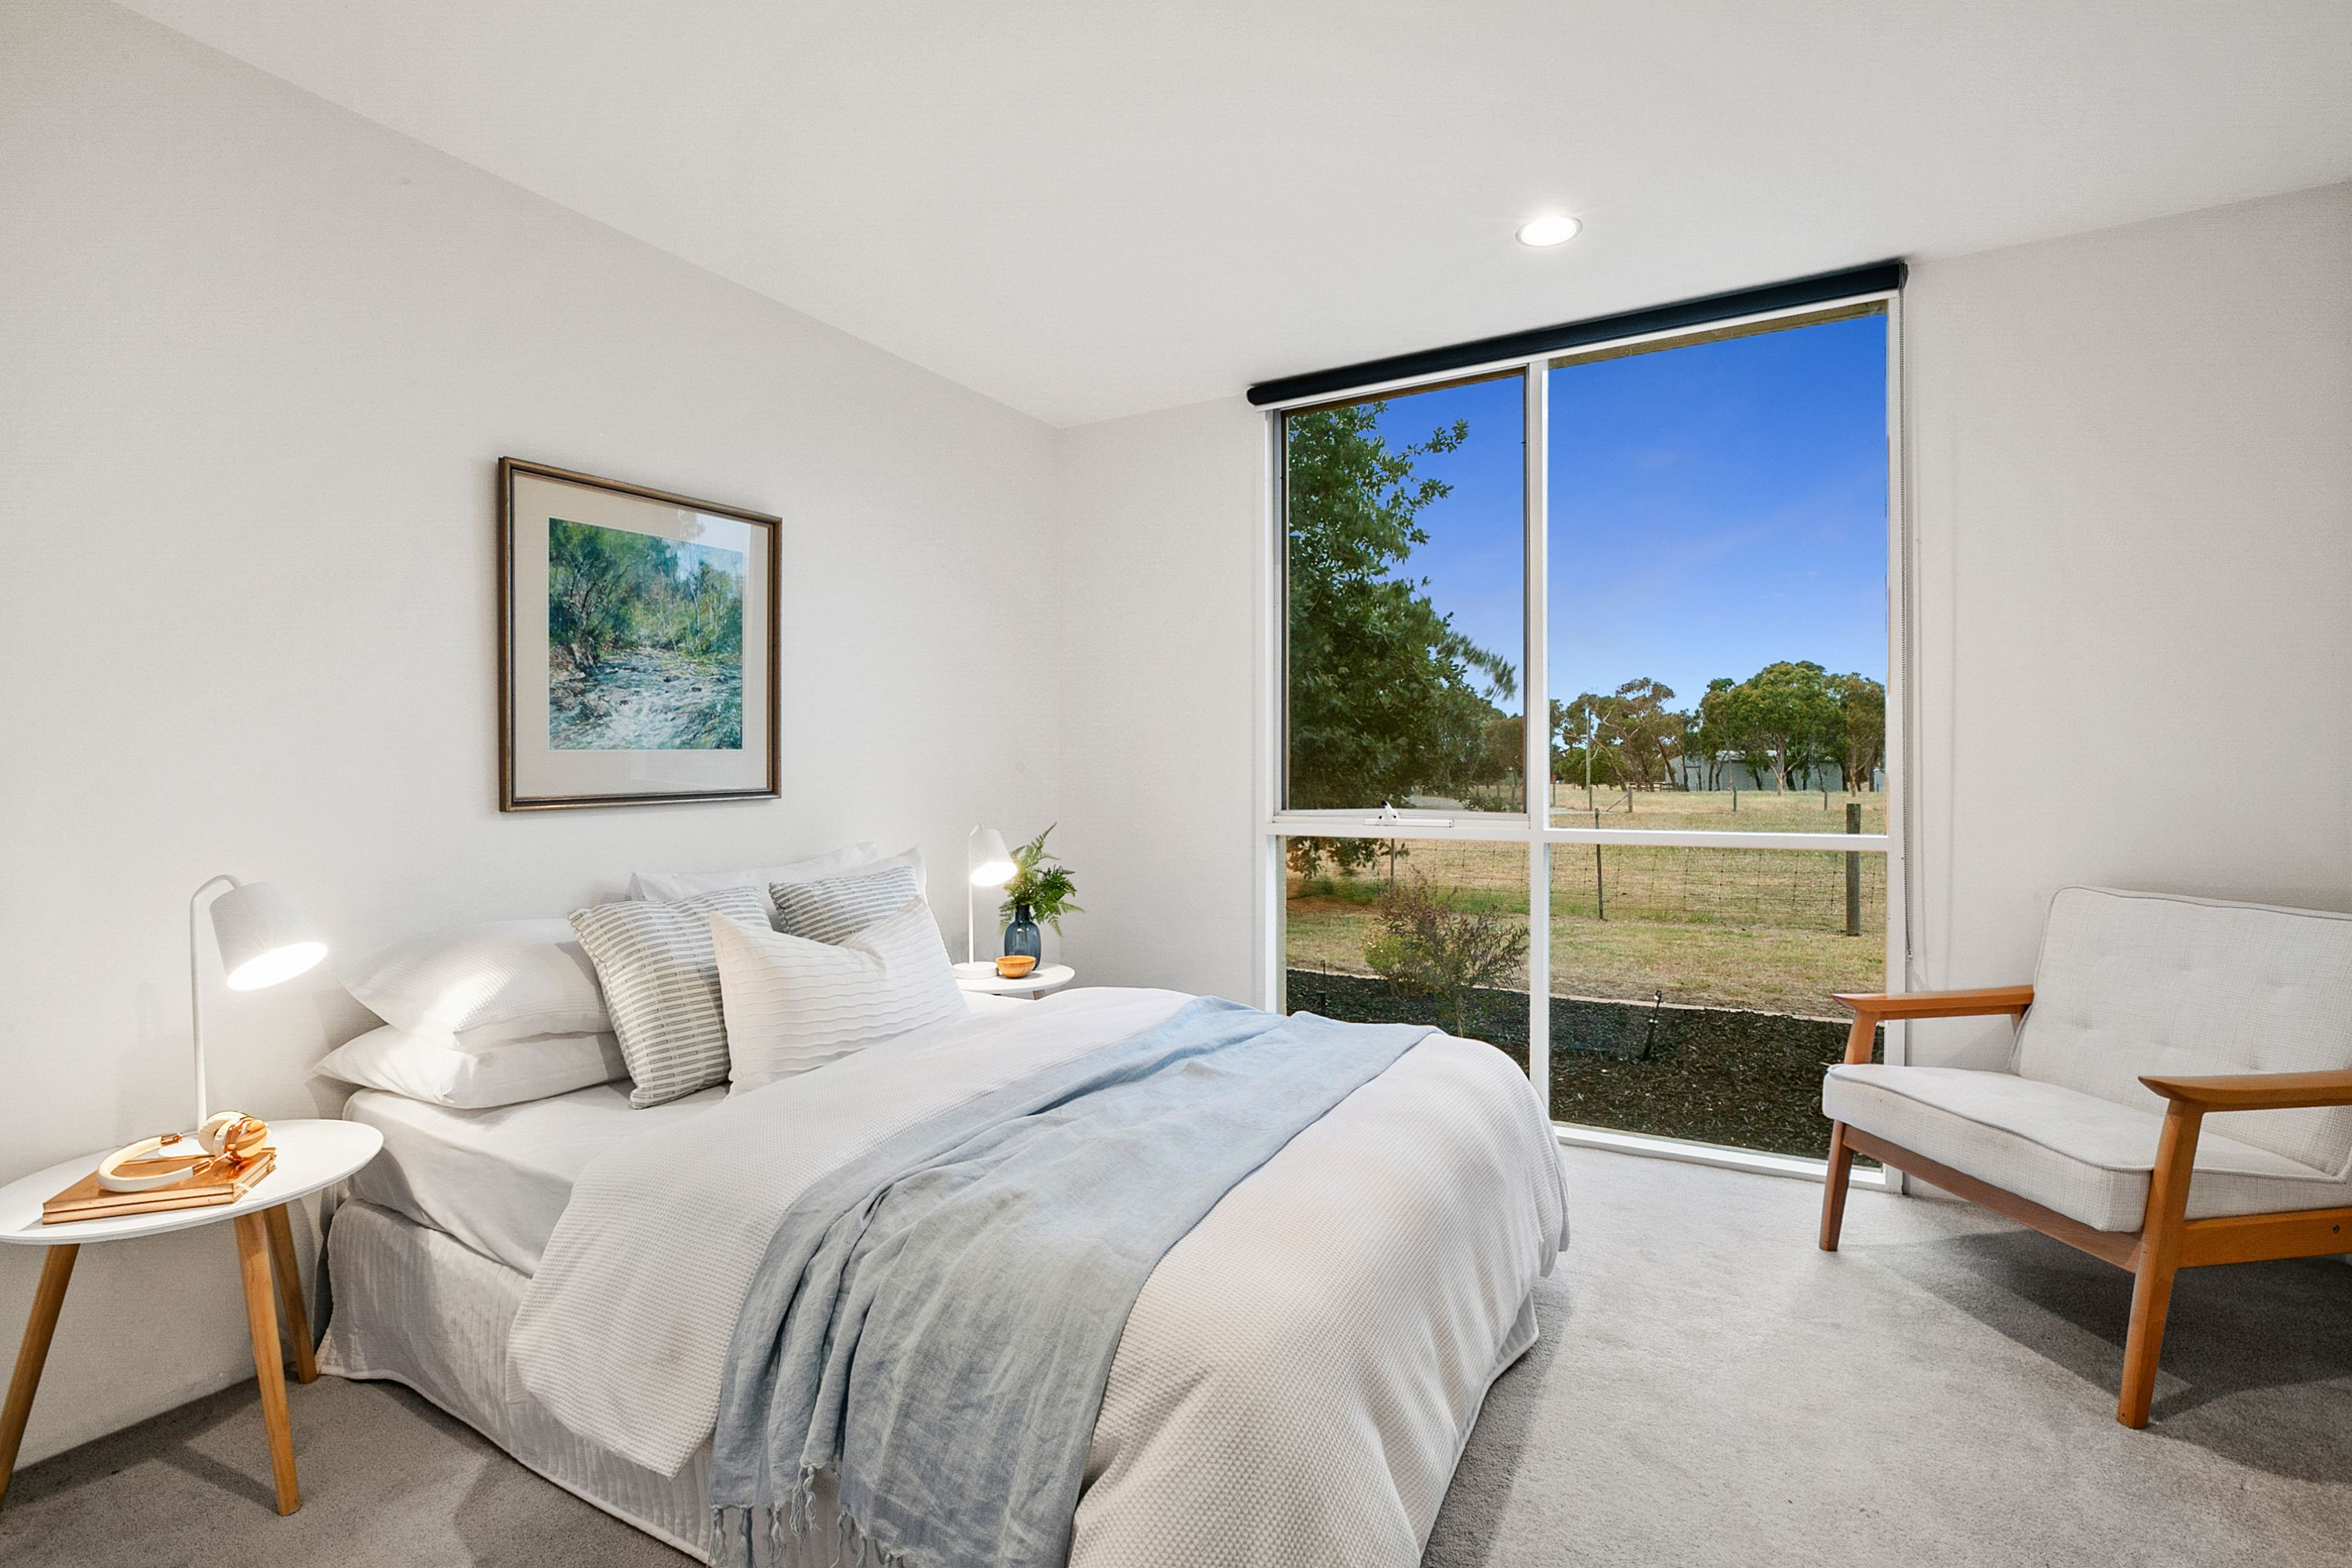 1752-1760 Bellarine Highway, Marcus Hill VIC 3222